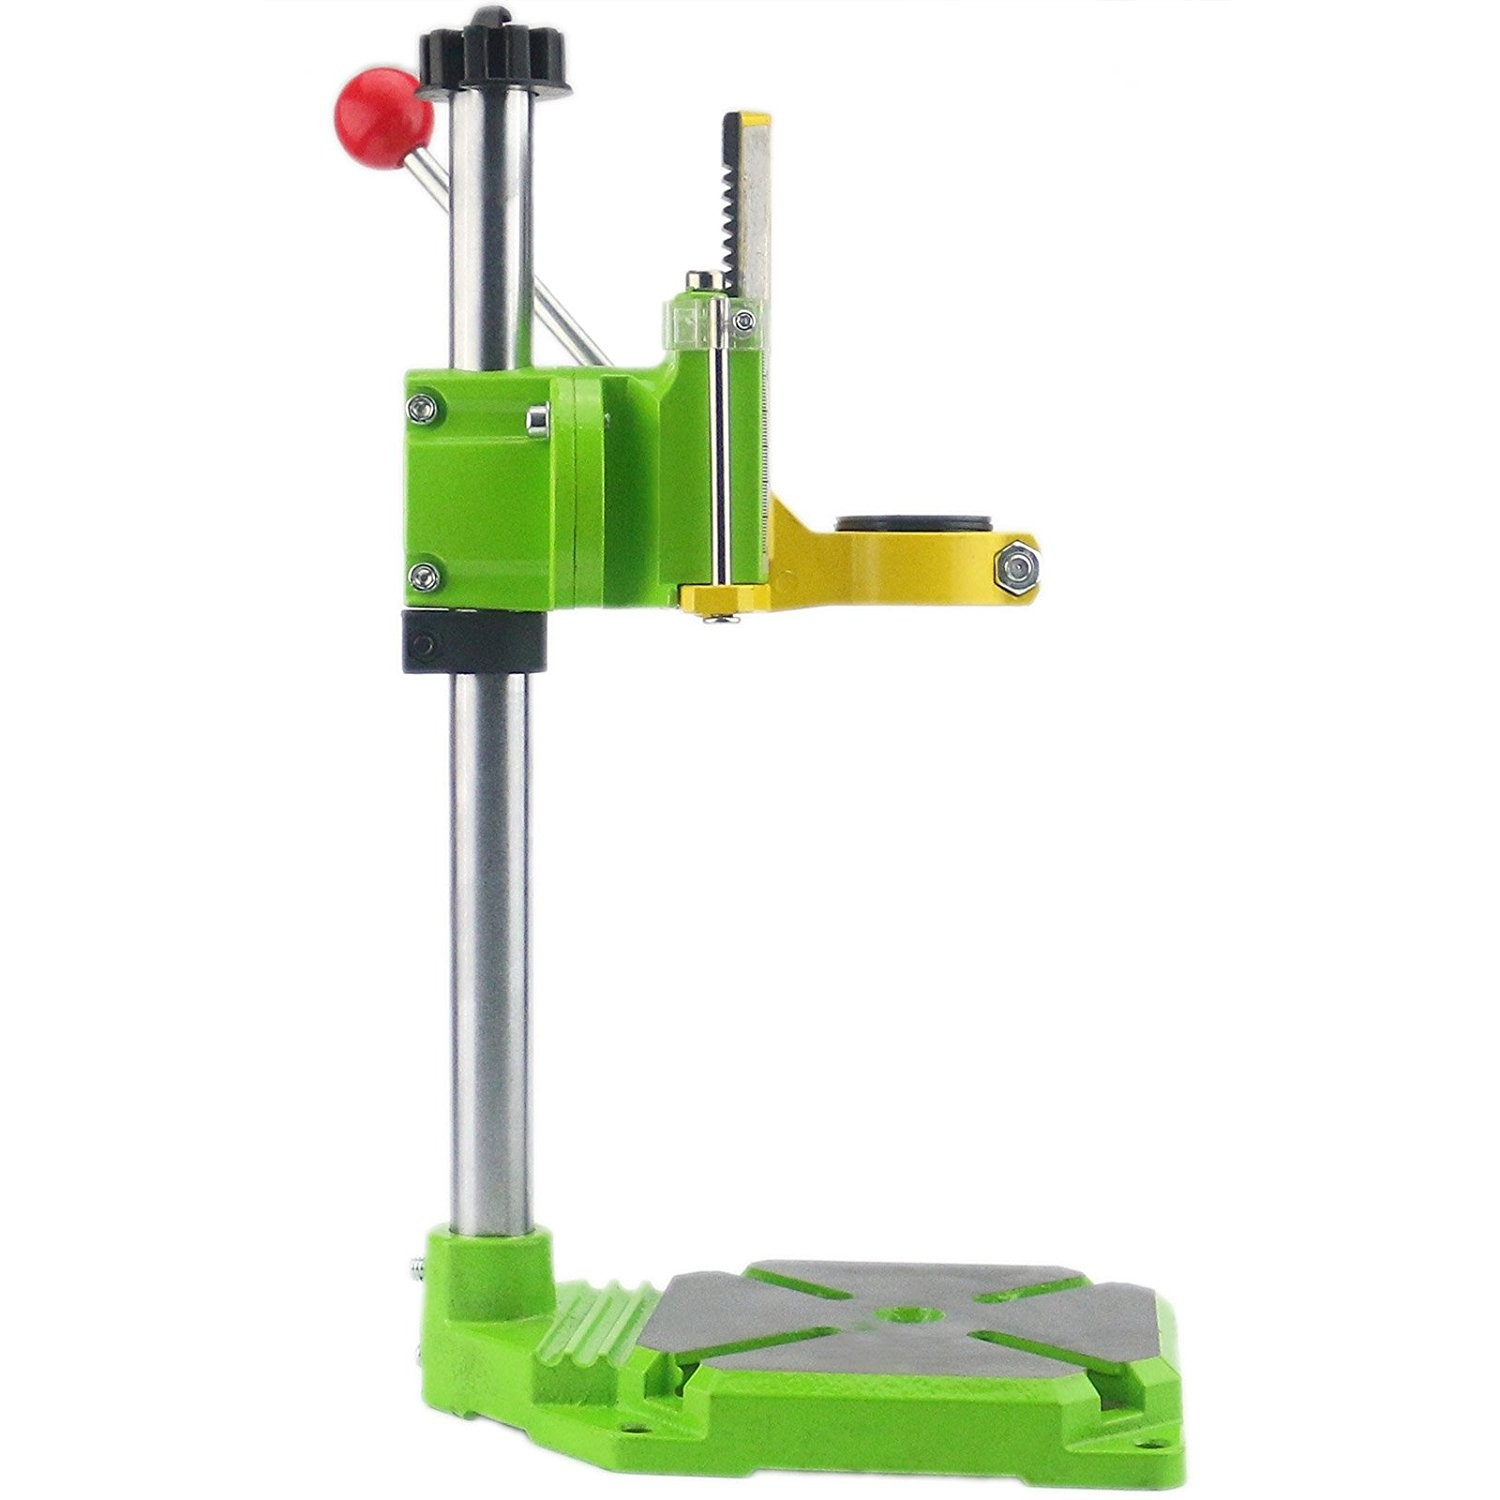 Ogrmar Drilling Collet drill press